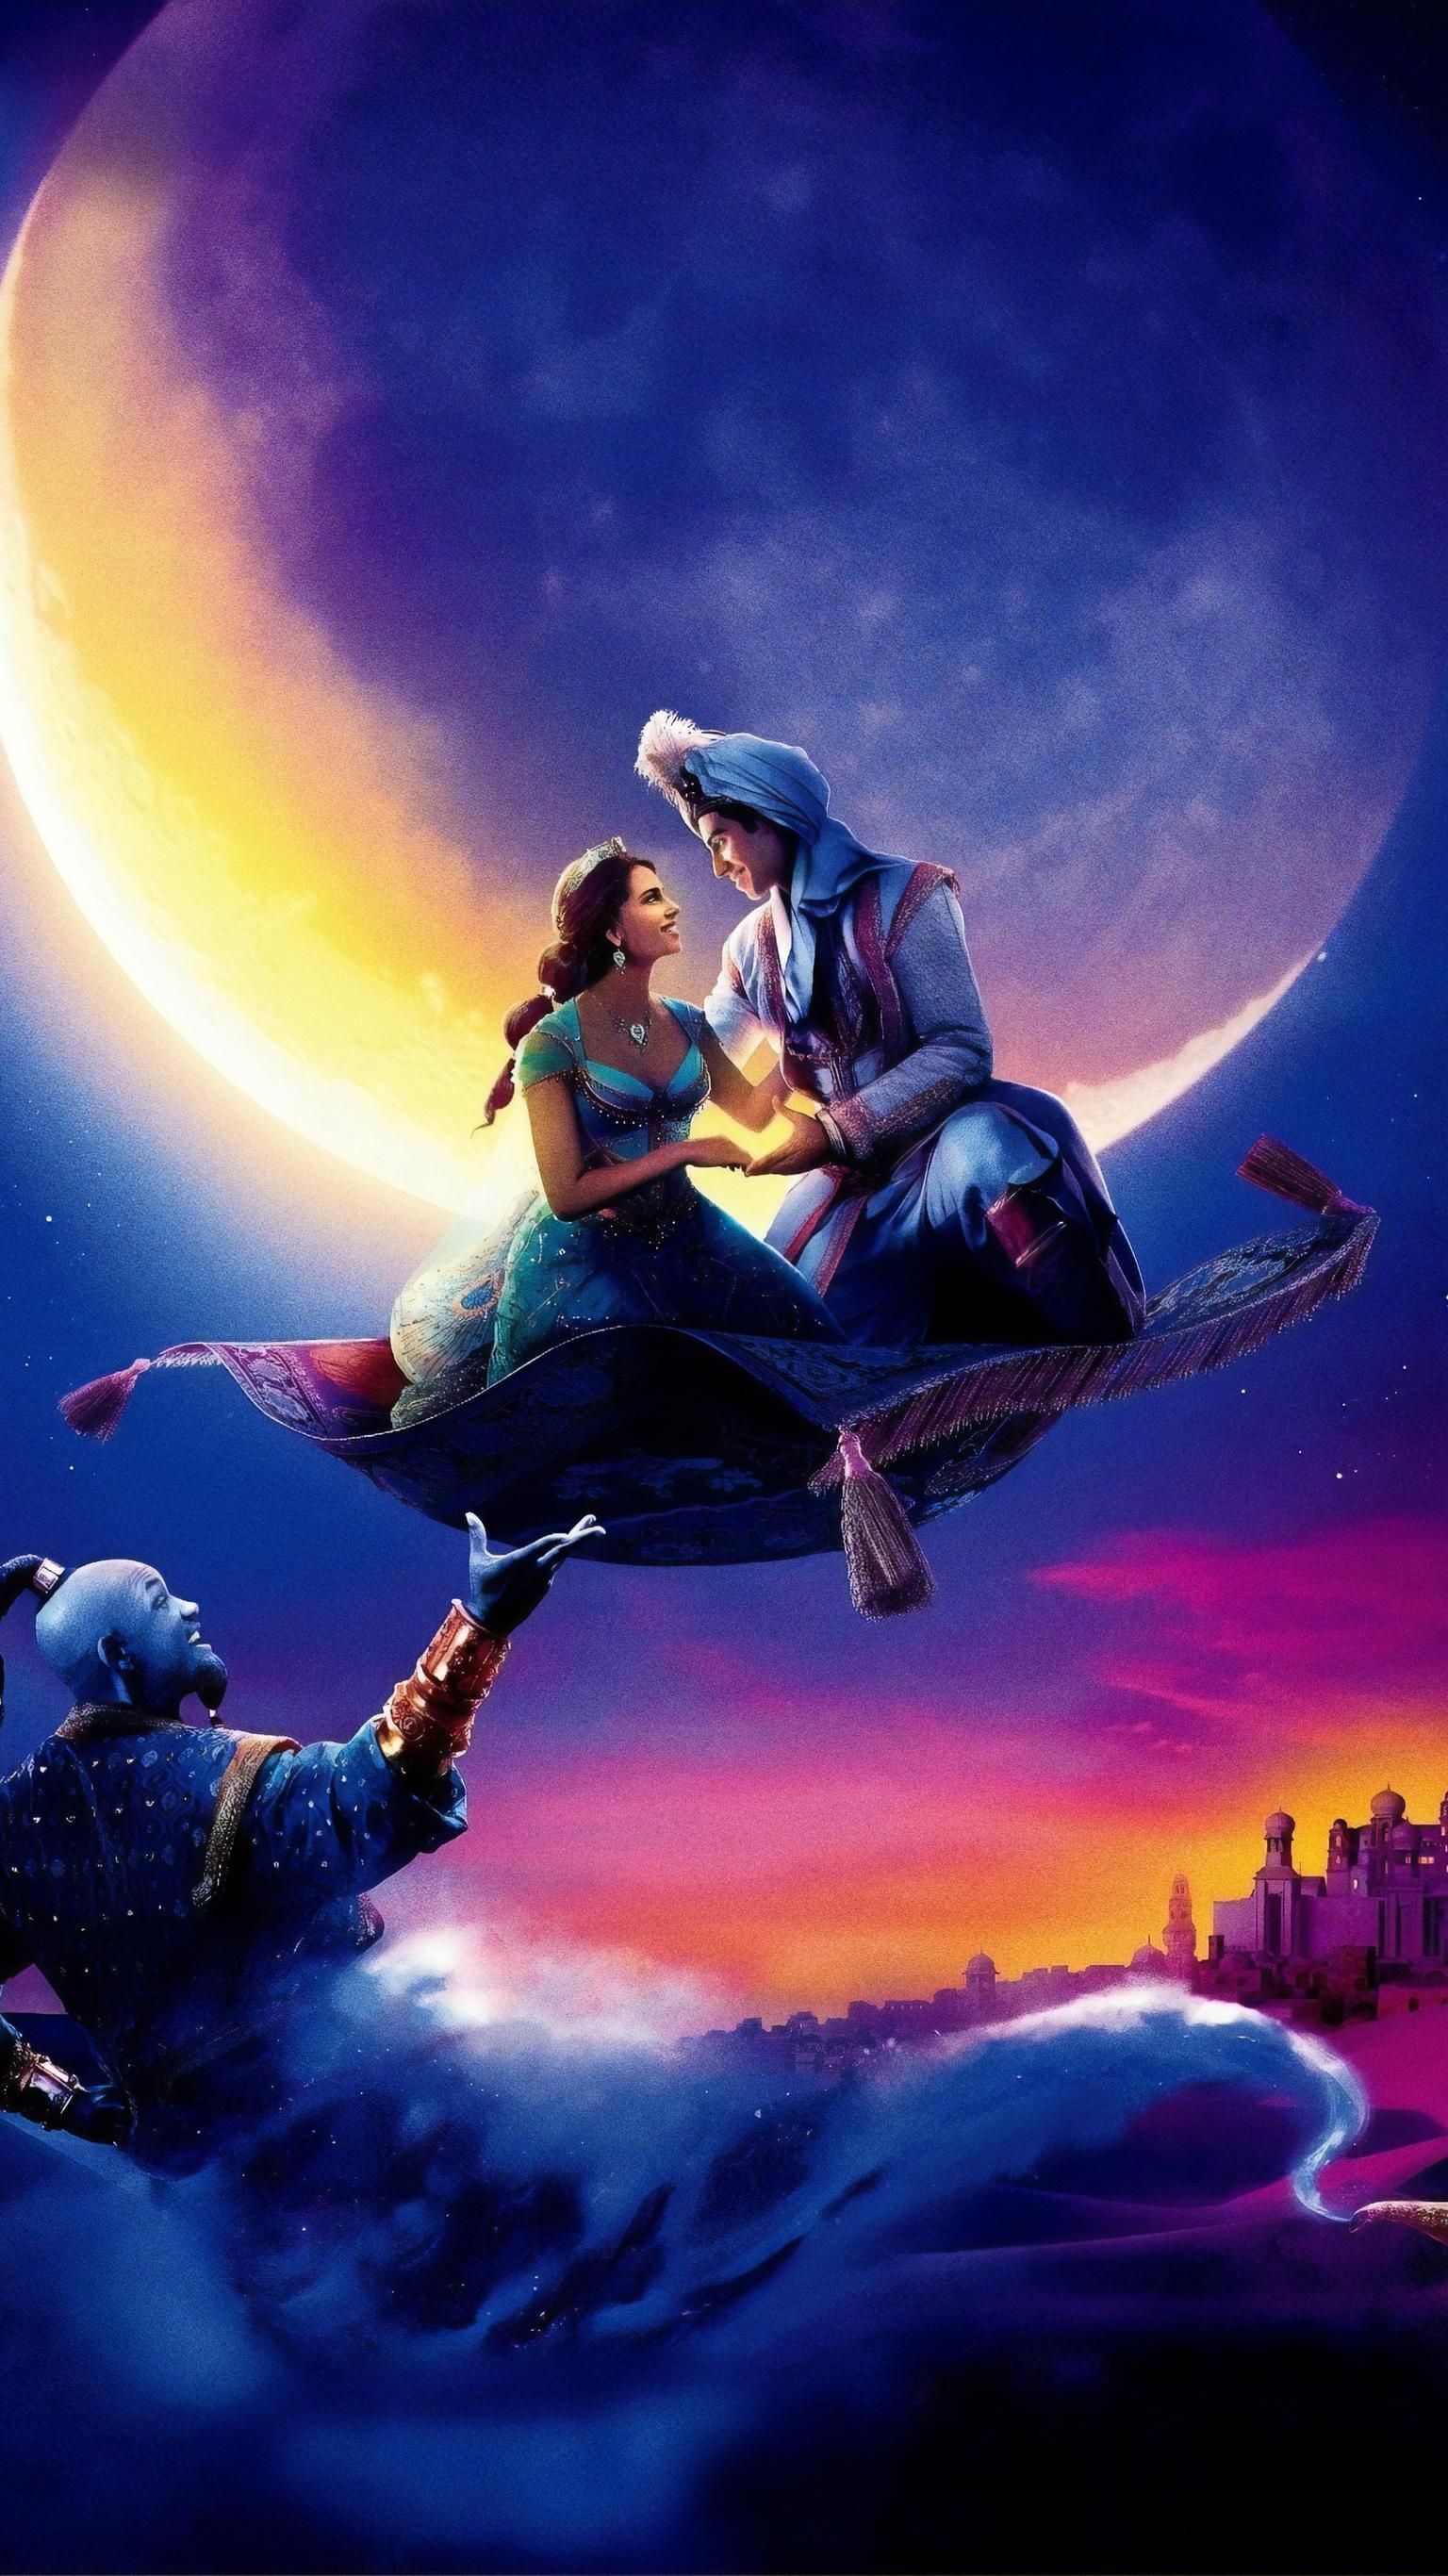 Aladdin 2019 Phone Wallpaper In 2019 Aladdin Wallpaper